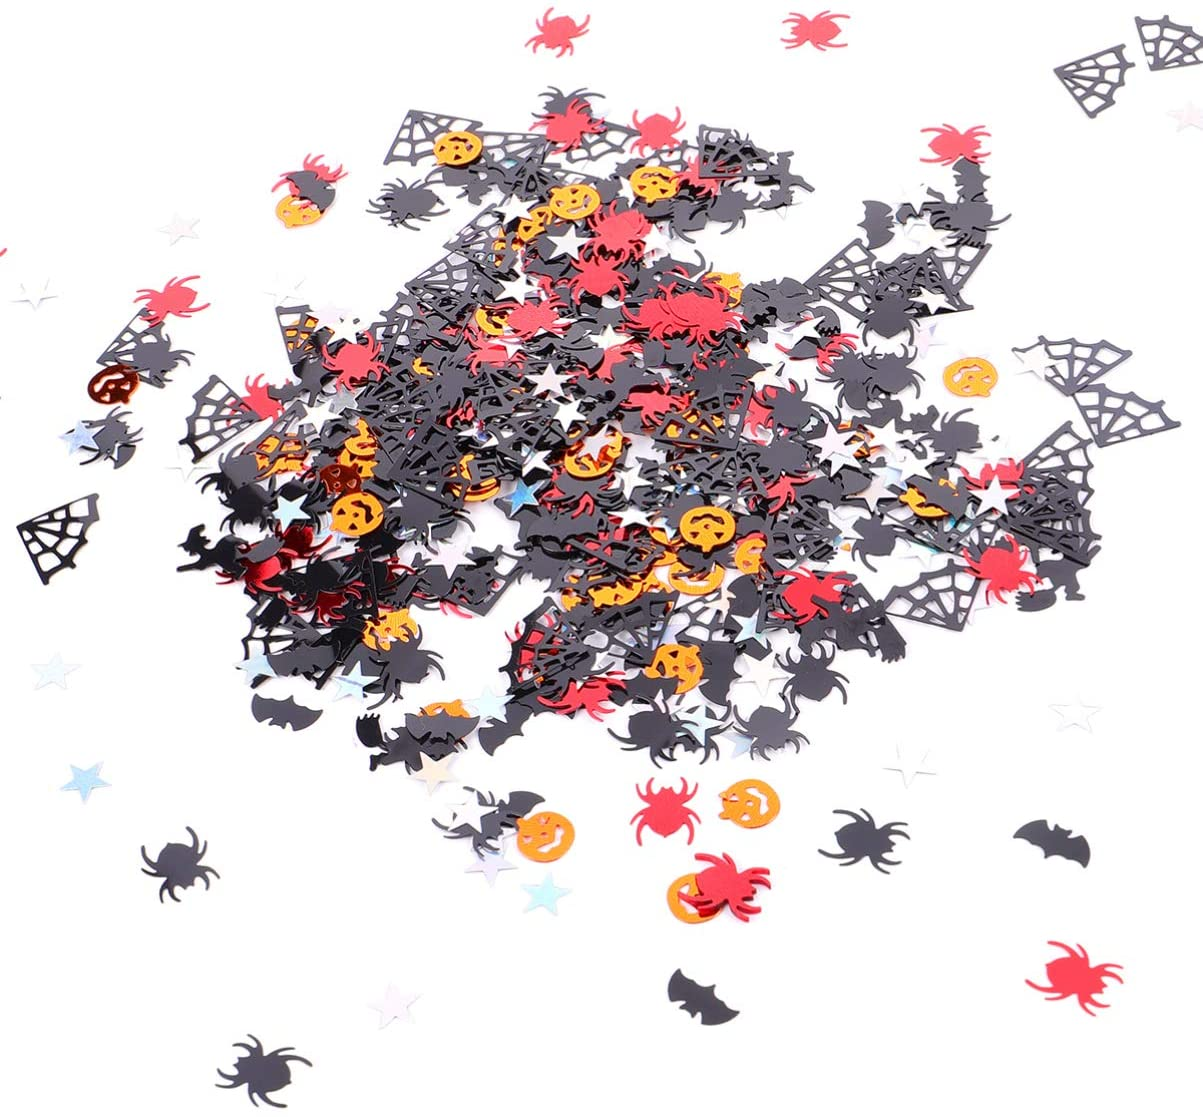 NUOBESTY Halloween Confetti Mini Confetti Night Party Table Scatter Plastic Throwing Confetti Sprinkles for Halloween Party Table Decoration and DIY Craft 4 Bags